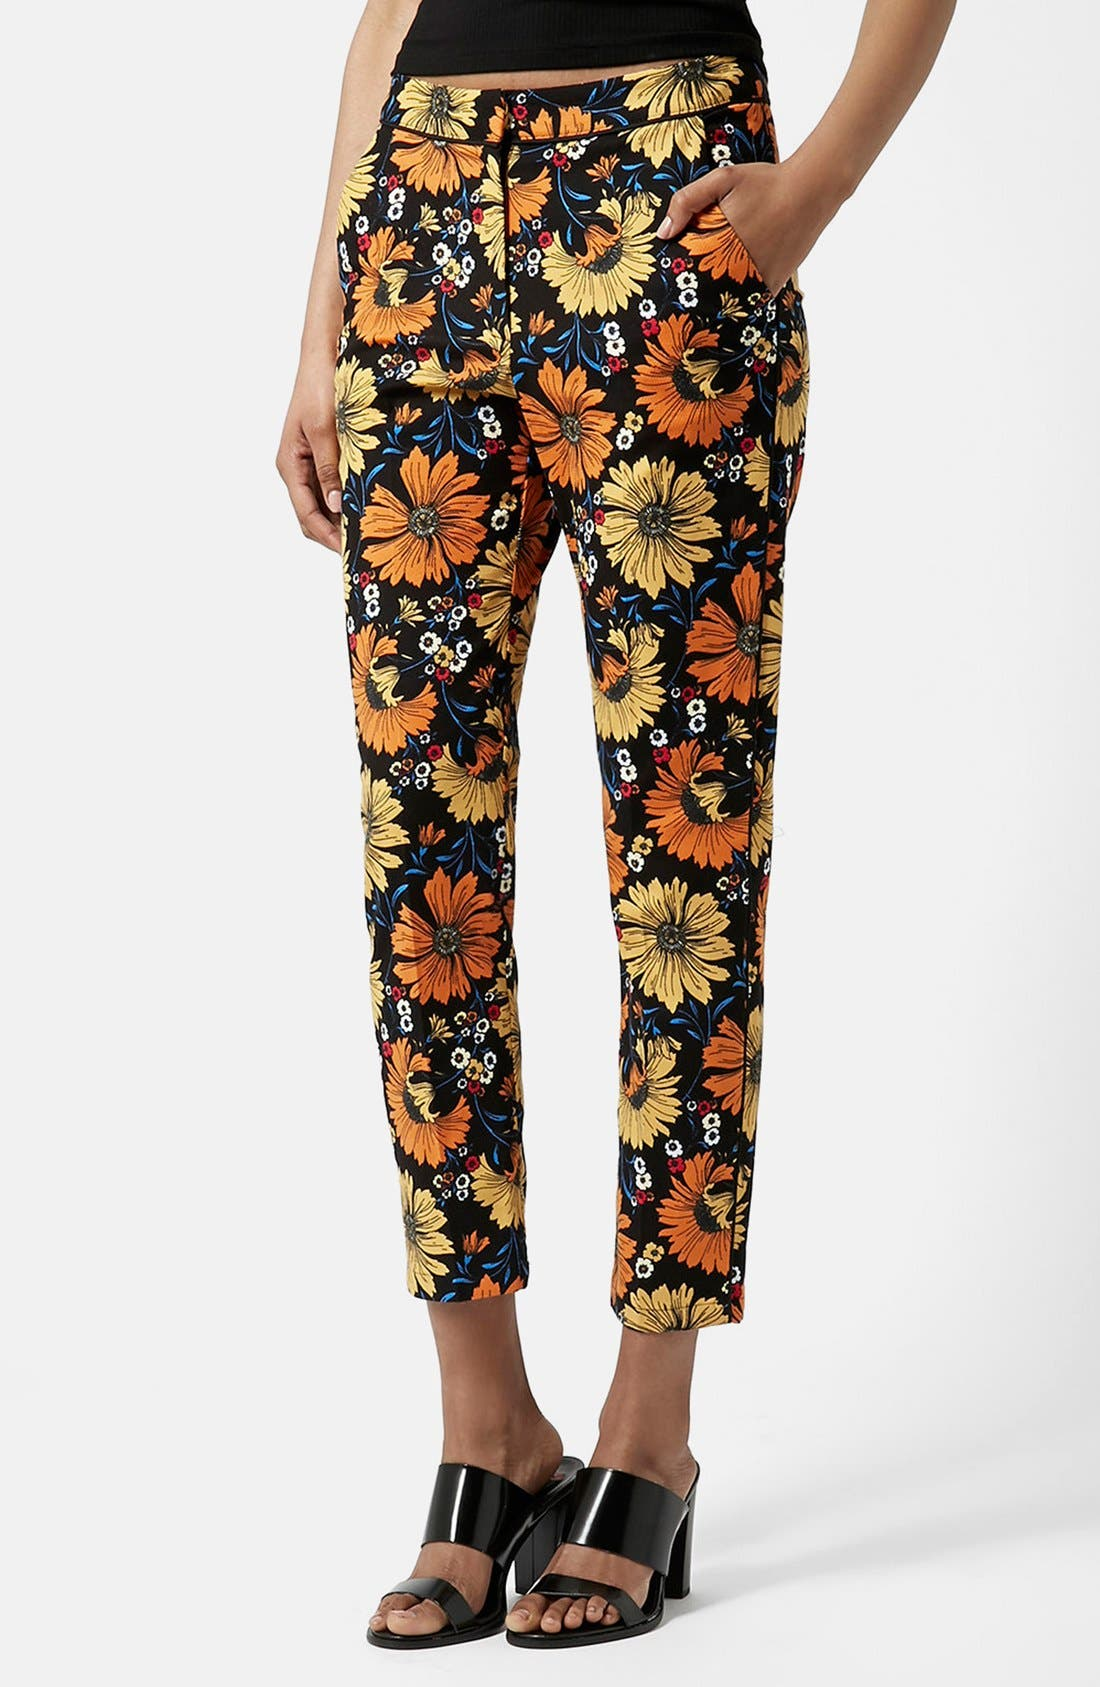 Alternate Image 1 Selected - Topshop Daisy Print Cigarette Trousers